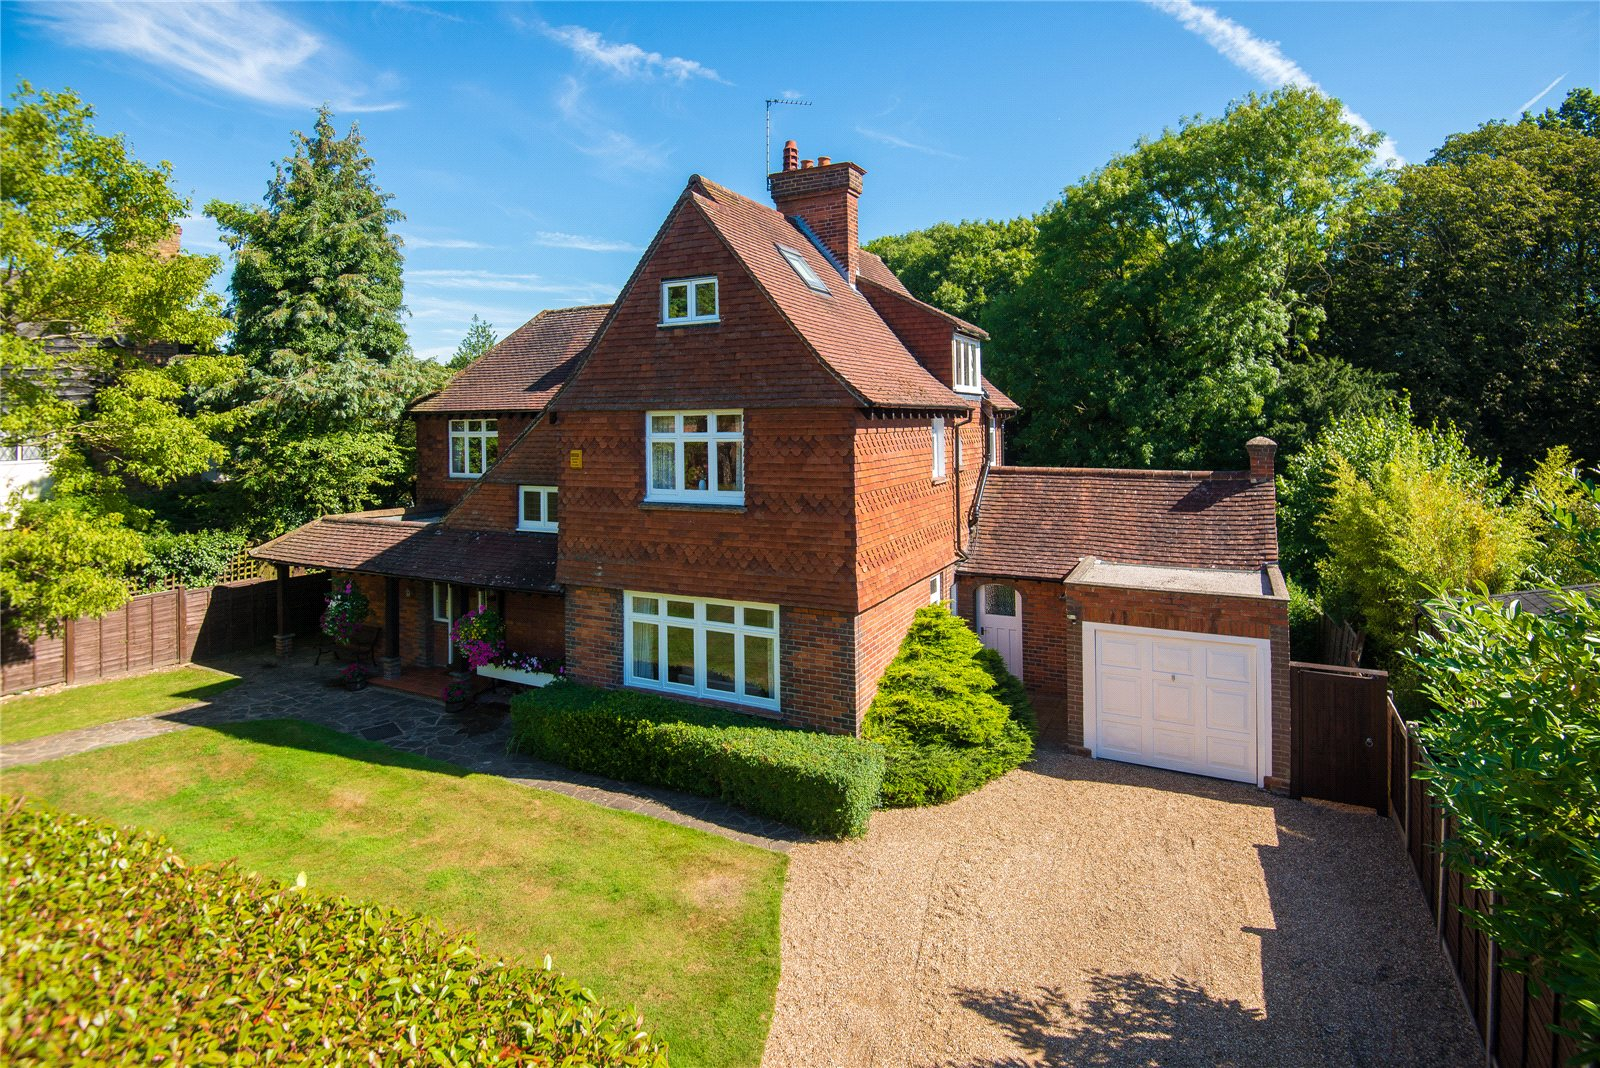 Casa Unifamiliar por un Venta en North Park, Gerrards Cross, Buckinghamshire, SL9 Gerrards Cross, Inglaterra